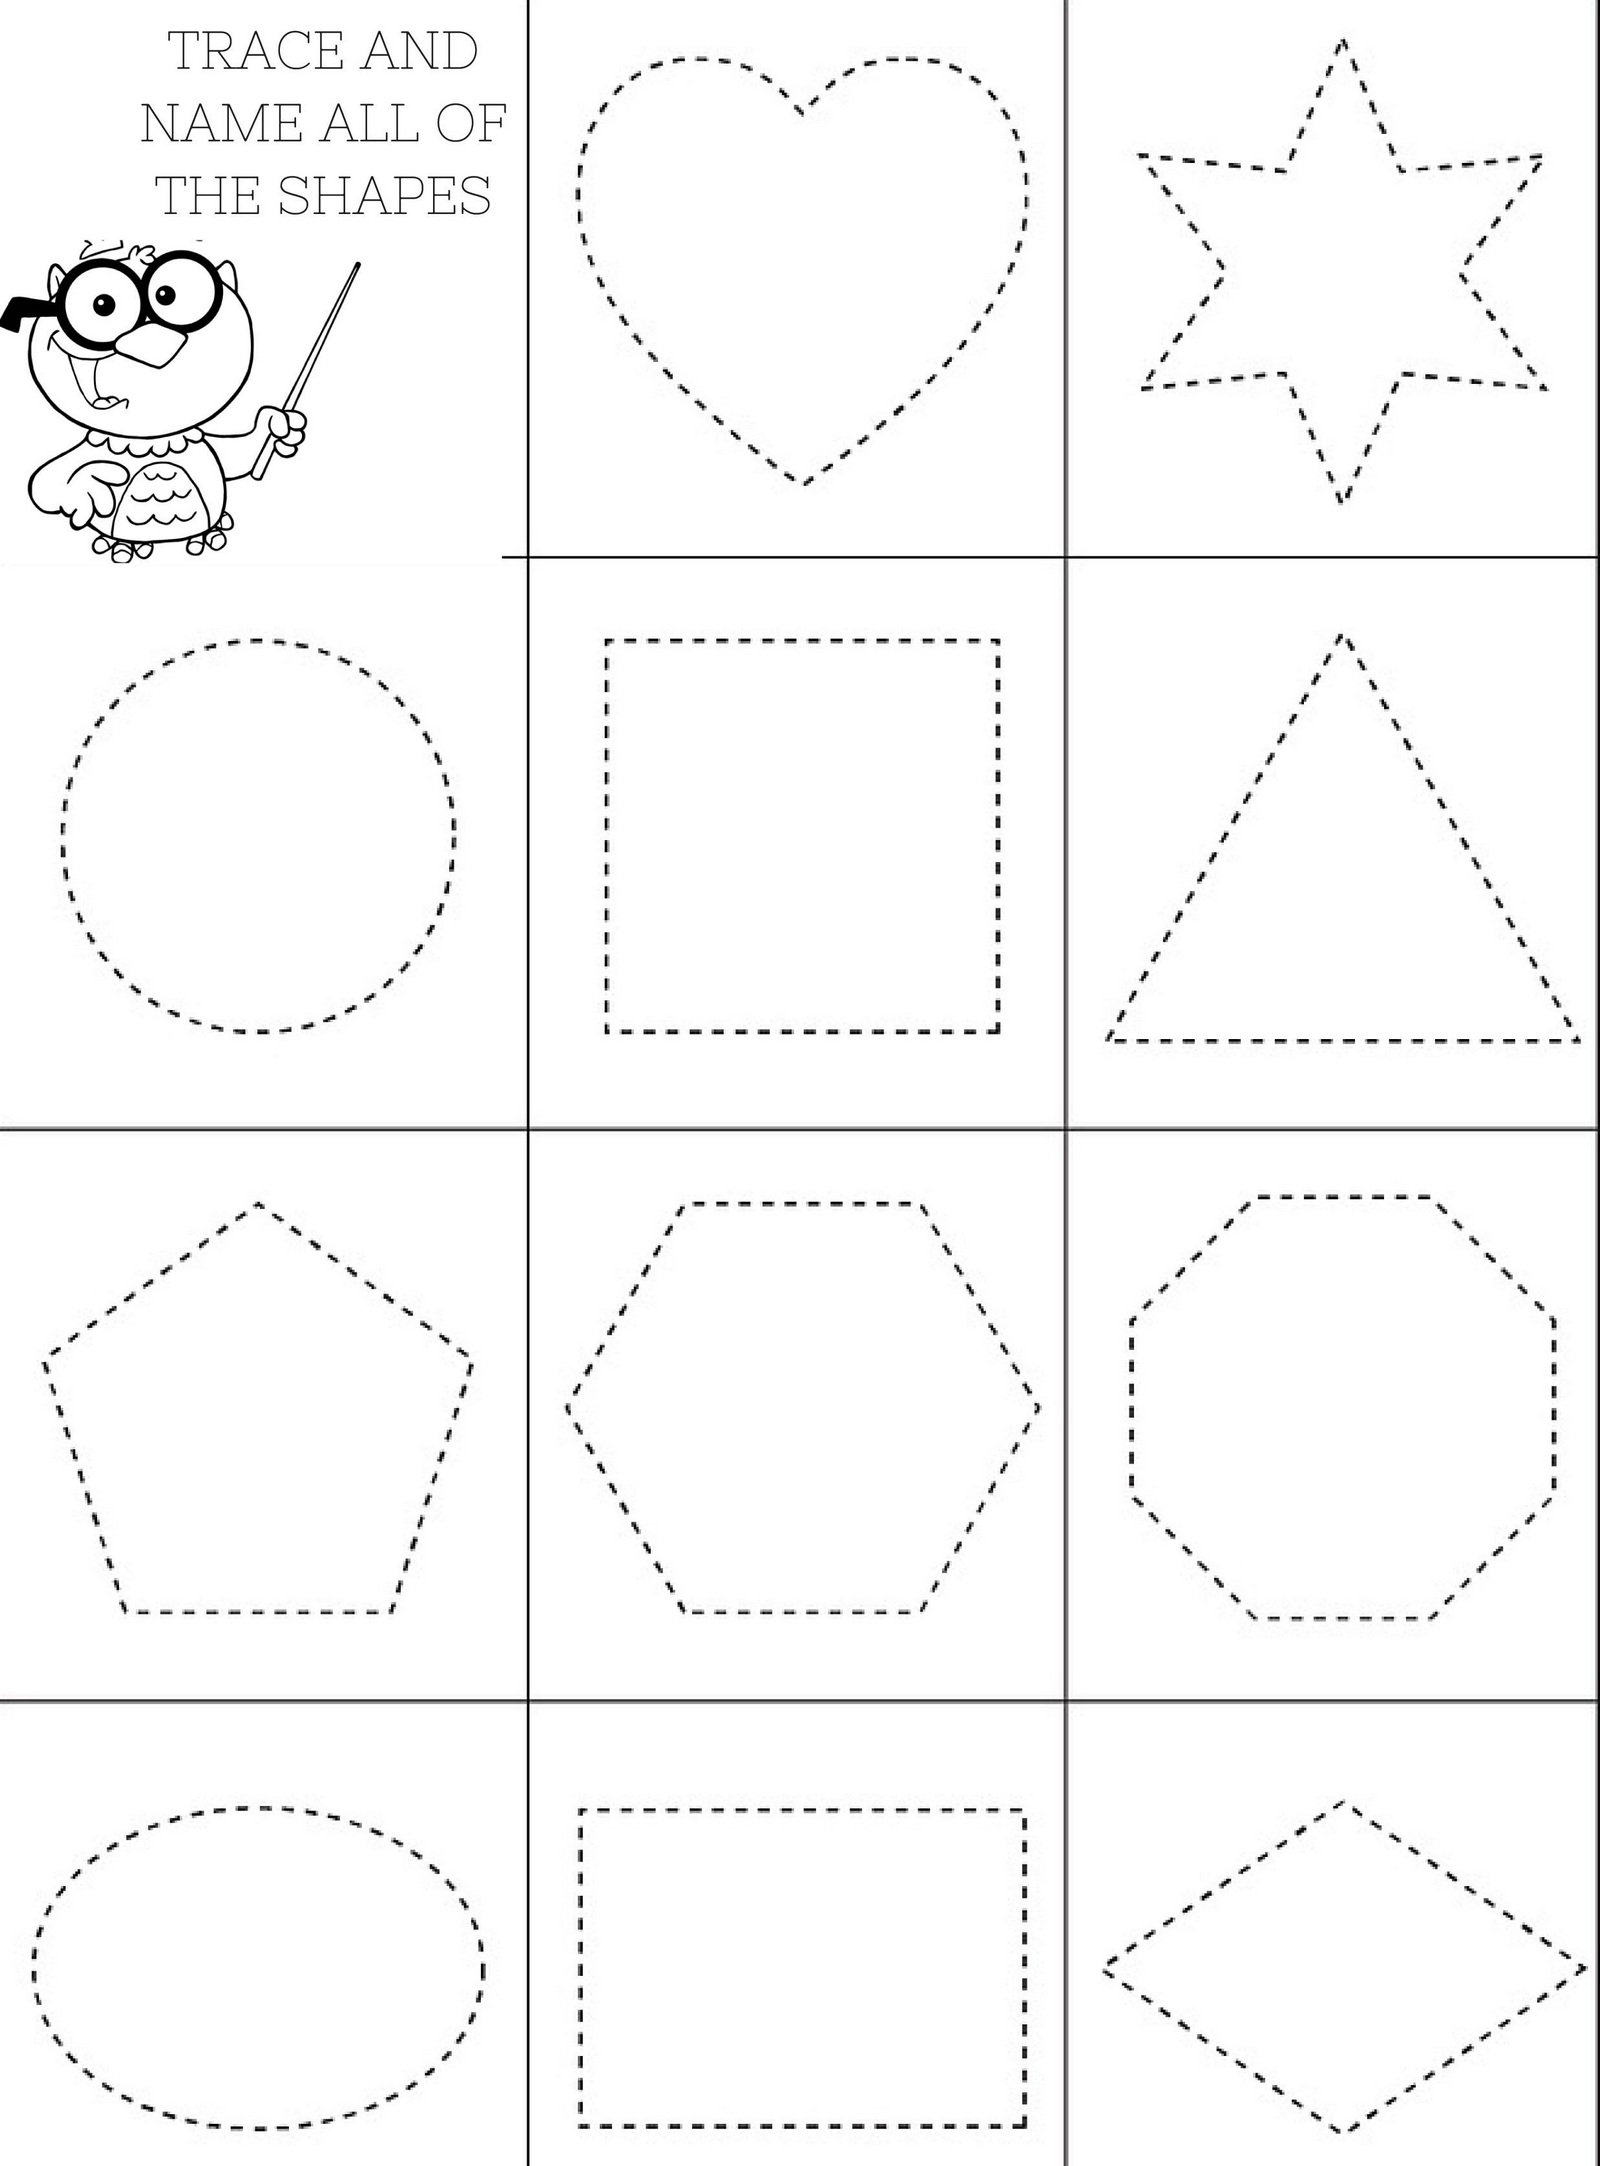 Printable shapes coloring page for preschool